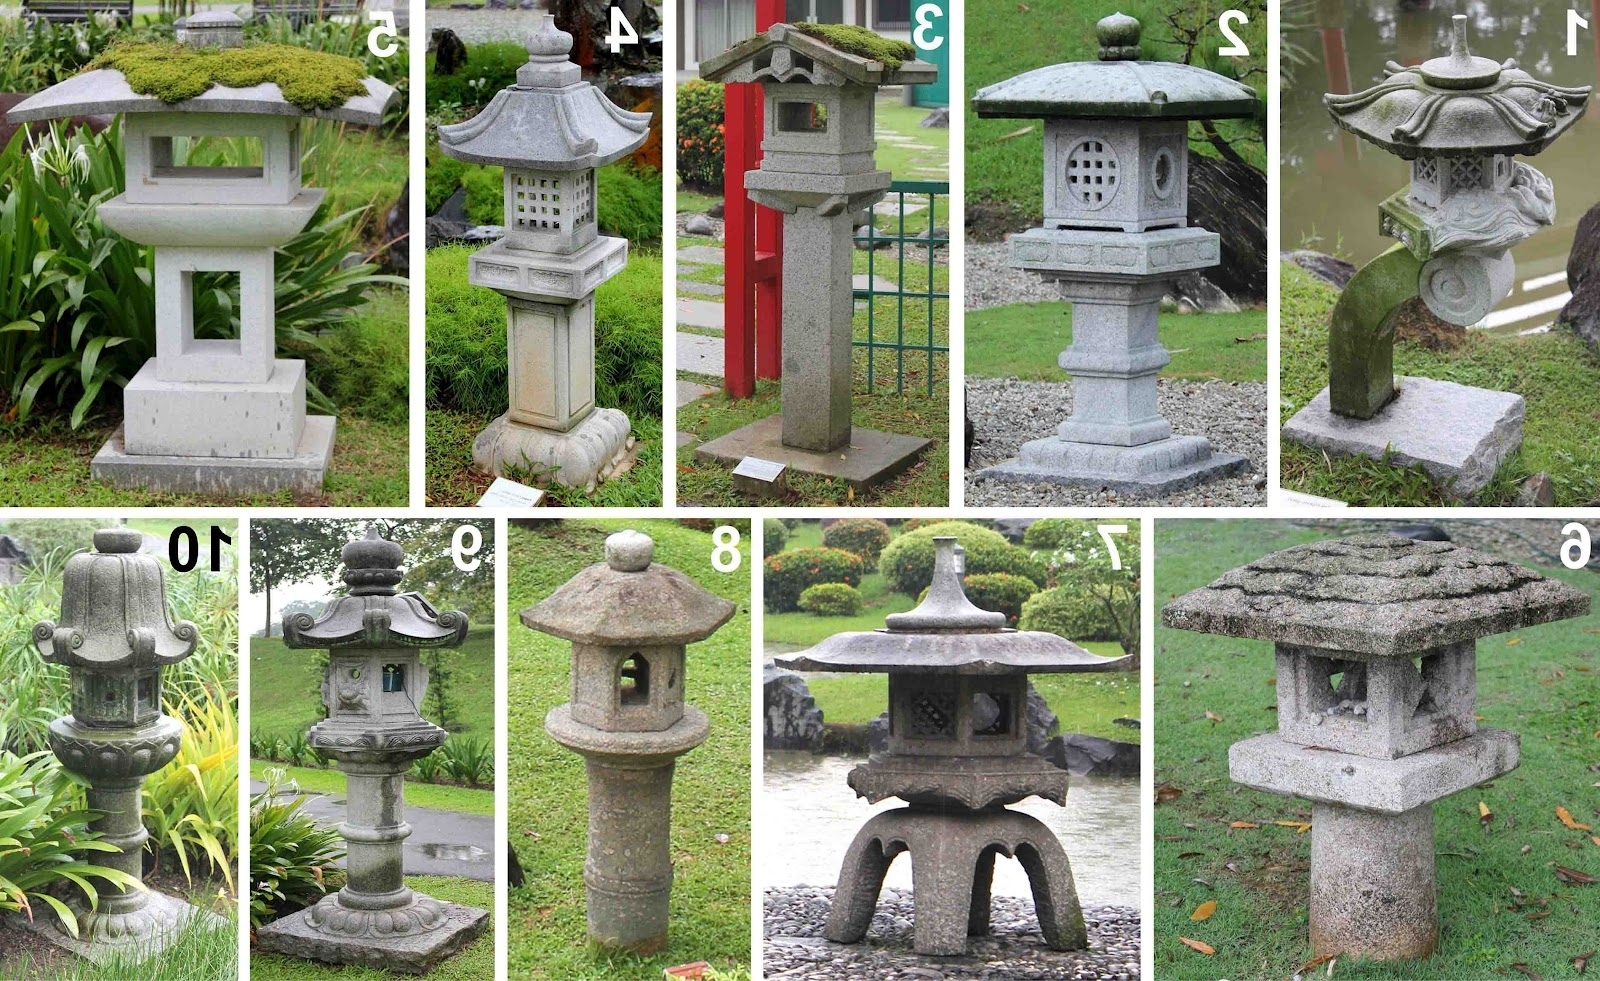 Outdoor Japanese Lamp New Bonsai Skosh Stone Lanterns At Singapore Pertaining To Most Up To Date Outdoor Japanese Lanterns (View 14 of 20)